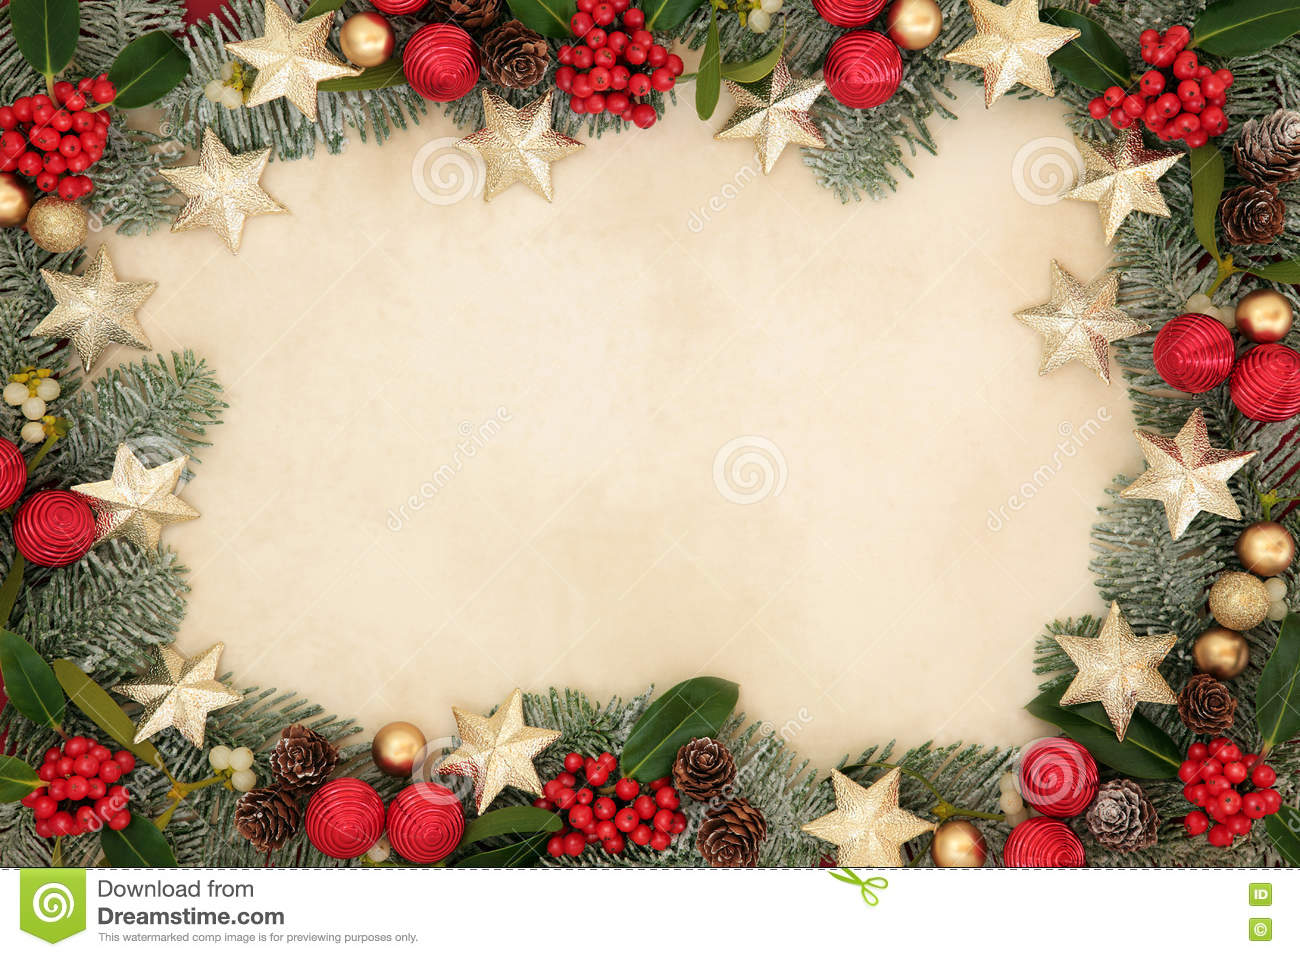 download christmas star background border stock image image of decoration card 76385059